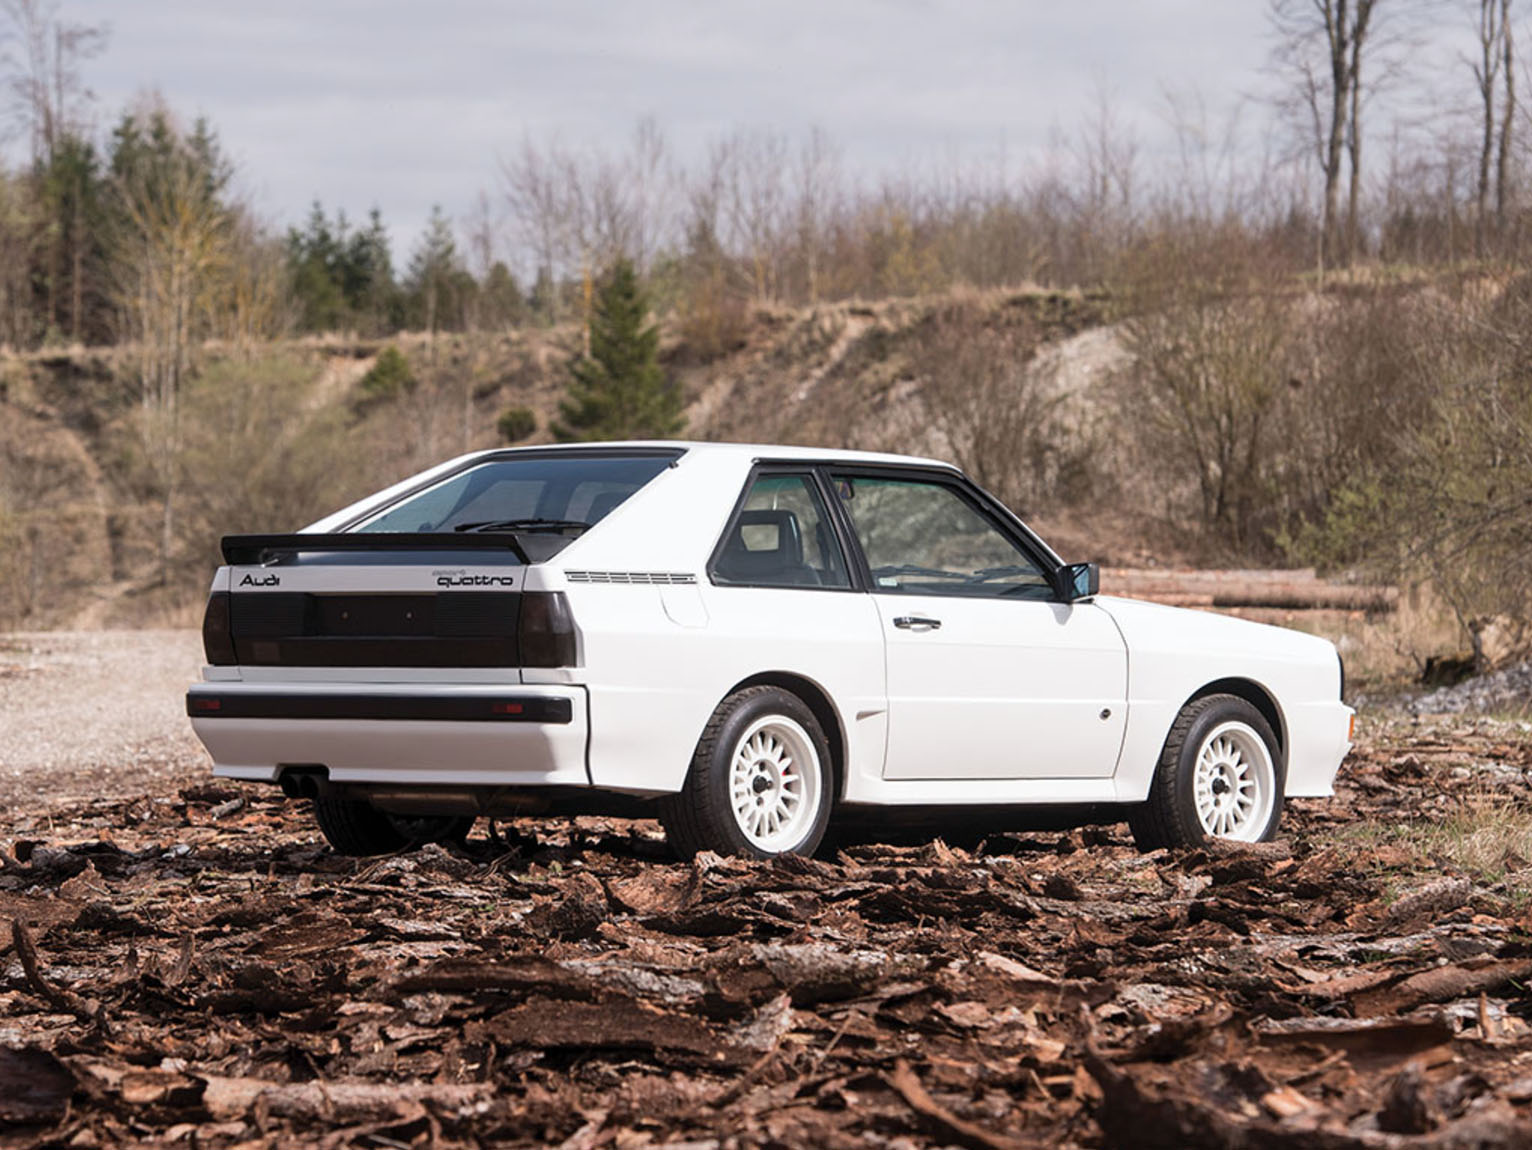 Heres Your Chance To Own A Audi Sport Quattro - Audi quattro